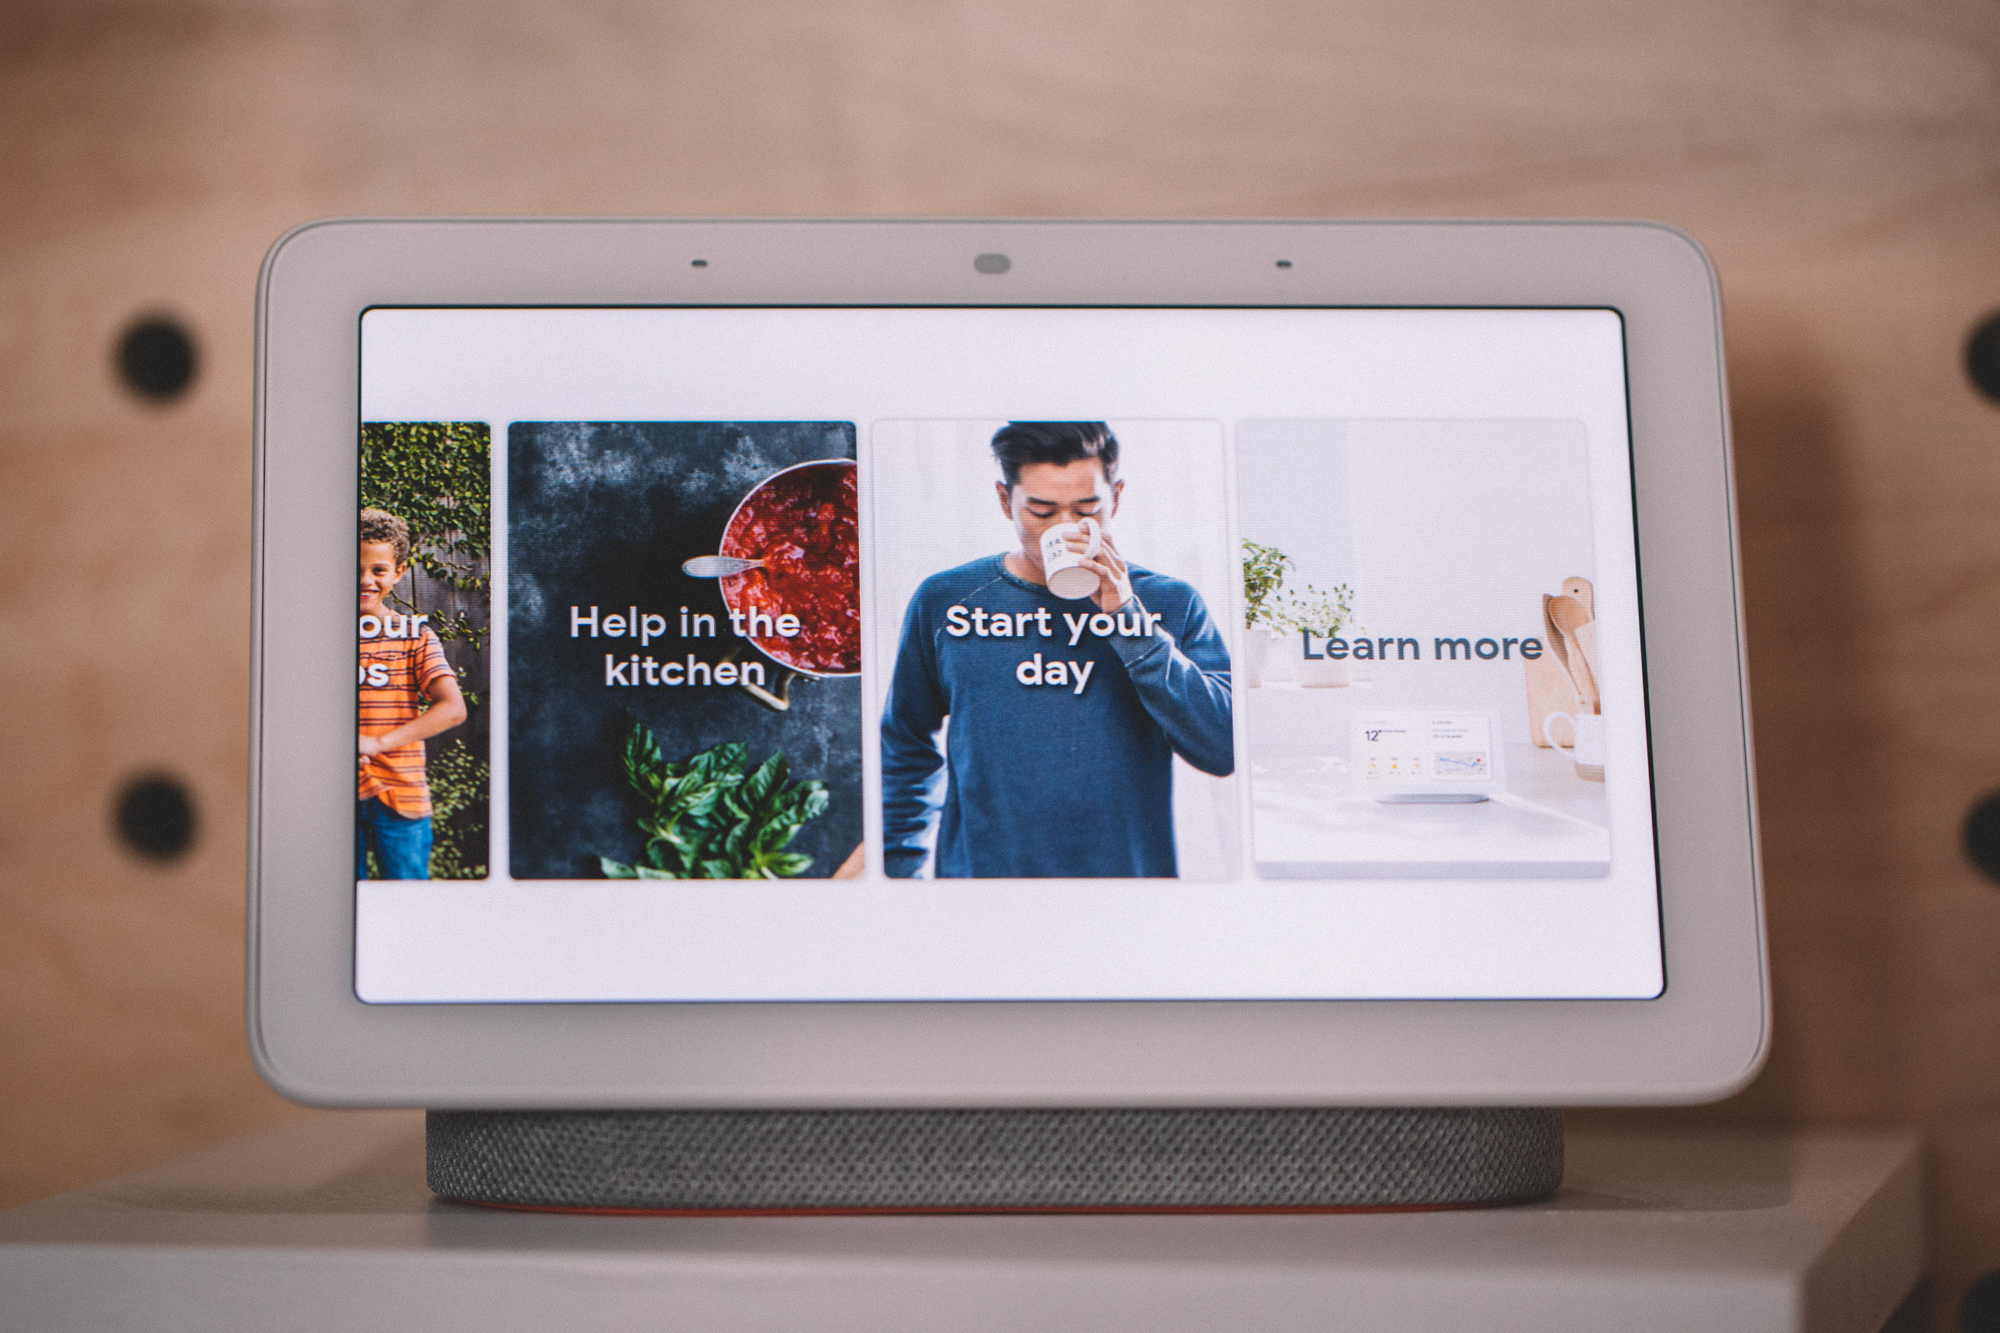 Google's Home Hub can be bricked with one line of code | TechCrunch